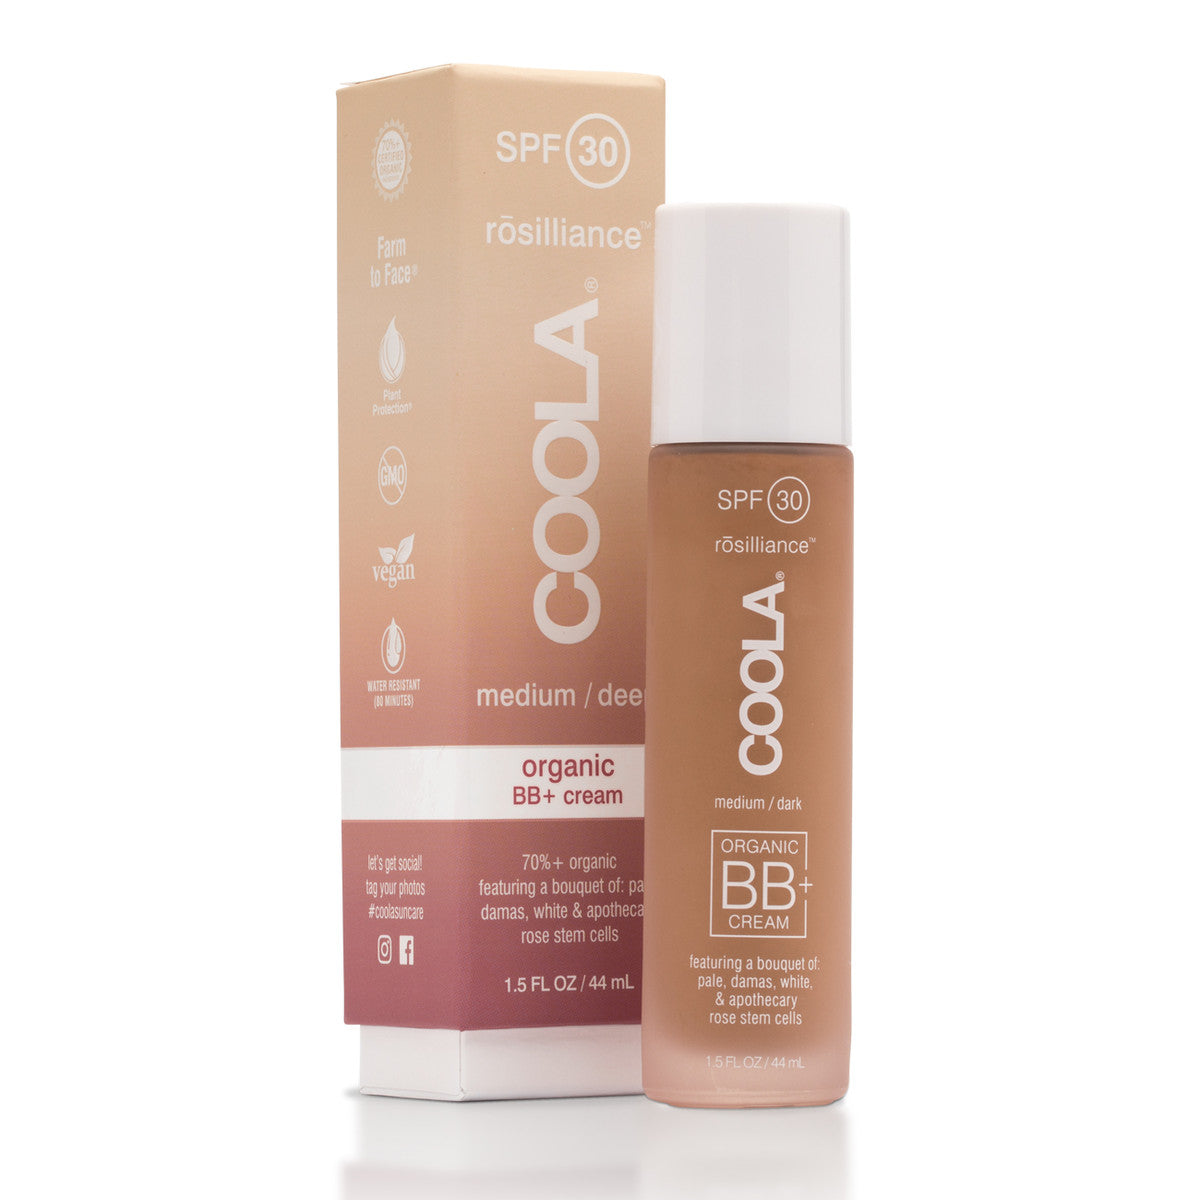 COOLA Rosilliance Organic BB+ Cream SPF 30 - Medium/Deep